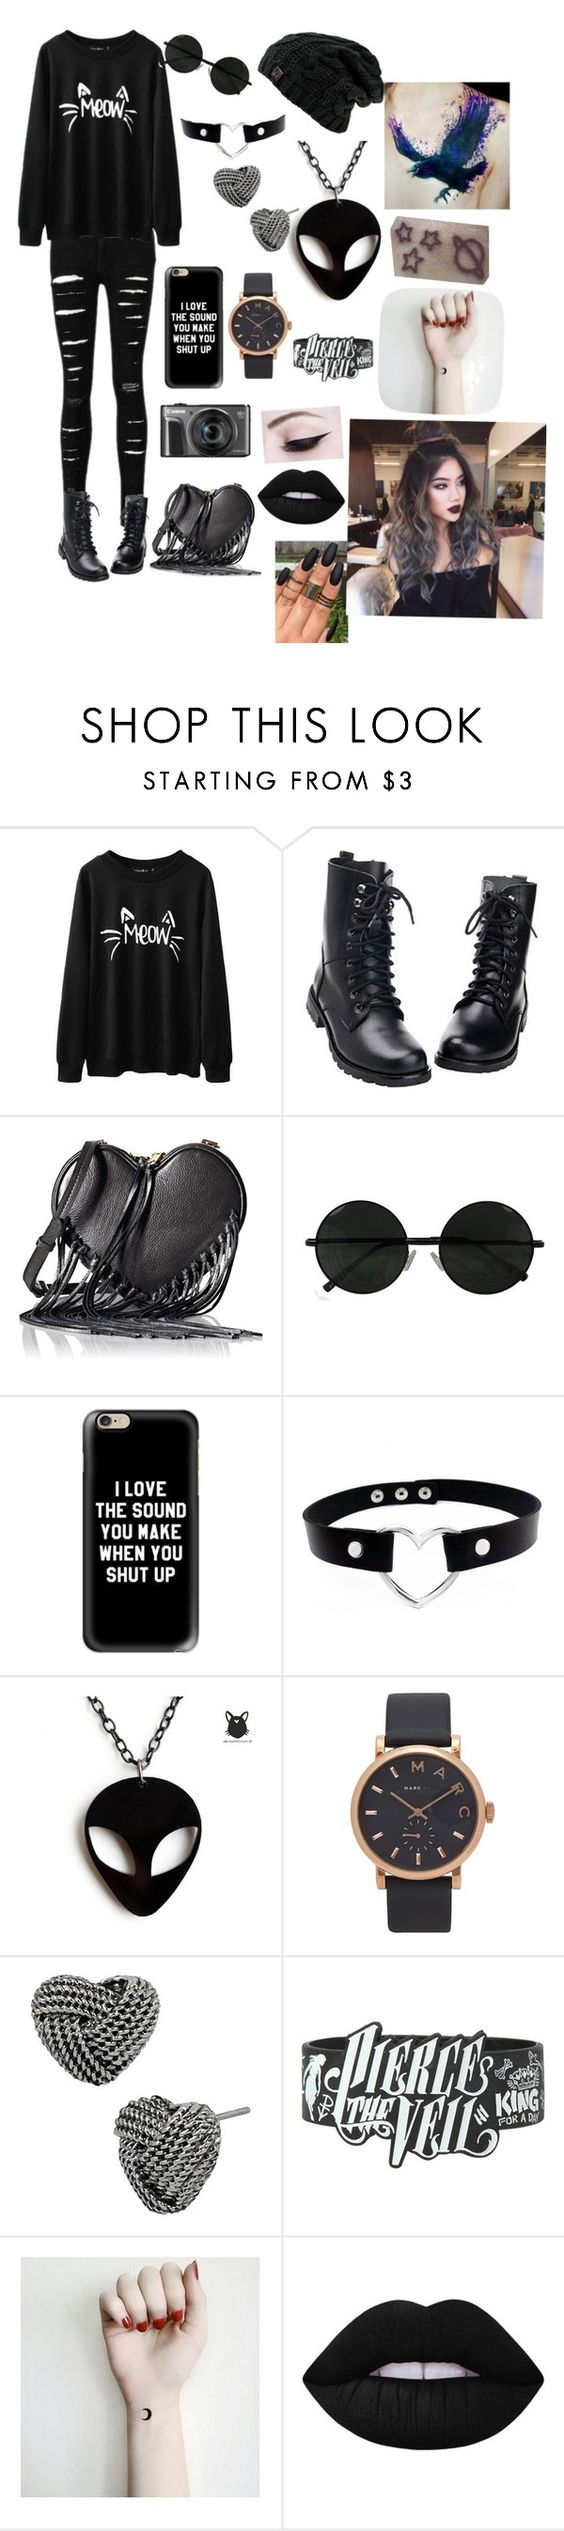 """""""Dark outfit"""" by katiemaise ❤ liked on Polyvore featuring Rebecca Minkoff, Casetify, Marc Jacobs, Betsey Johnson and Lime Crime"""